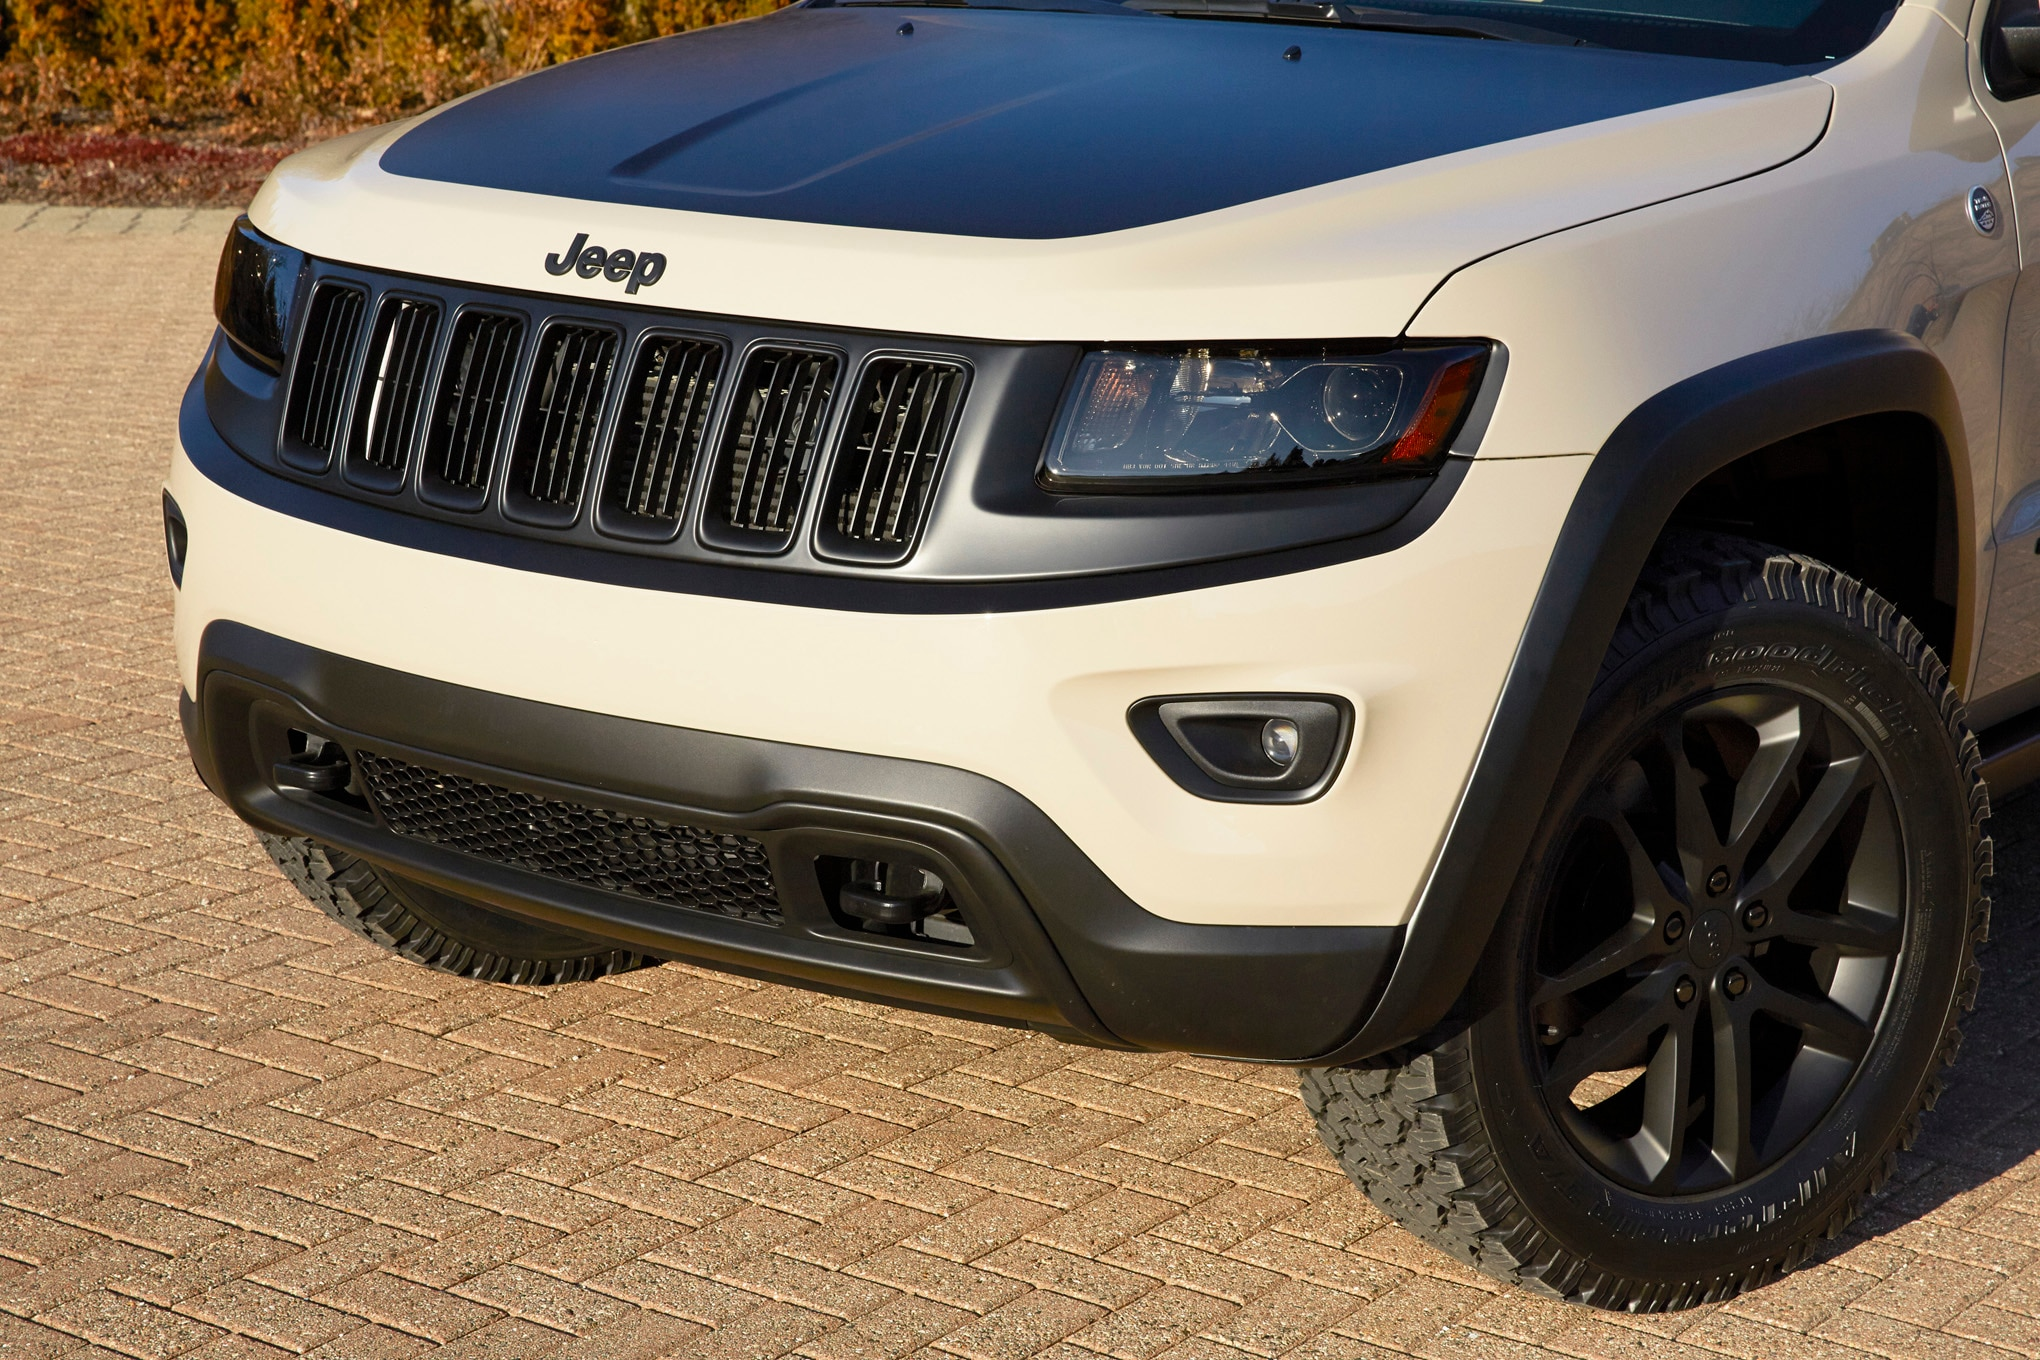 Jeep Grand Cherokee EcoDiesel Trail Warrior Concept front end